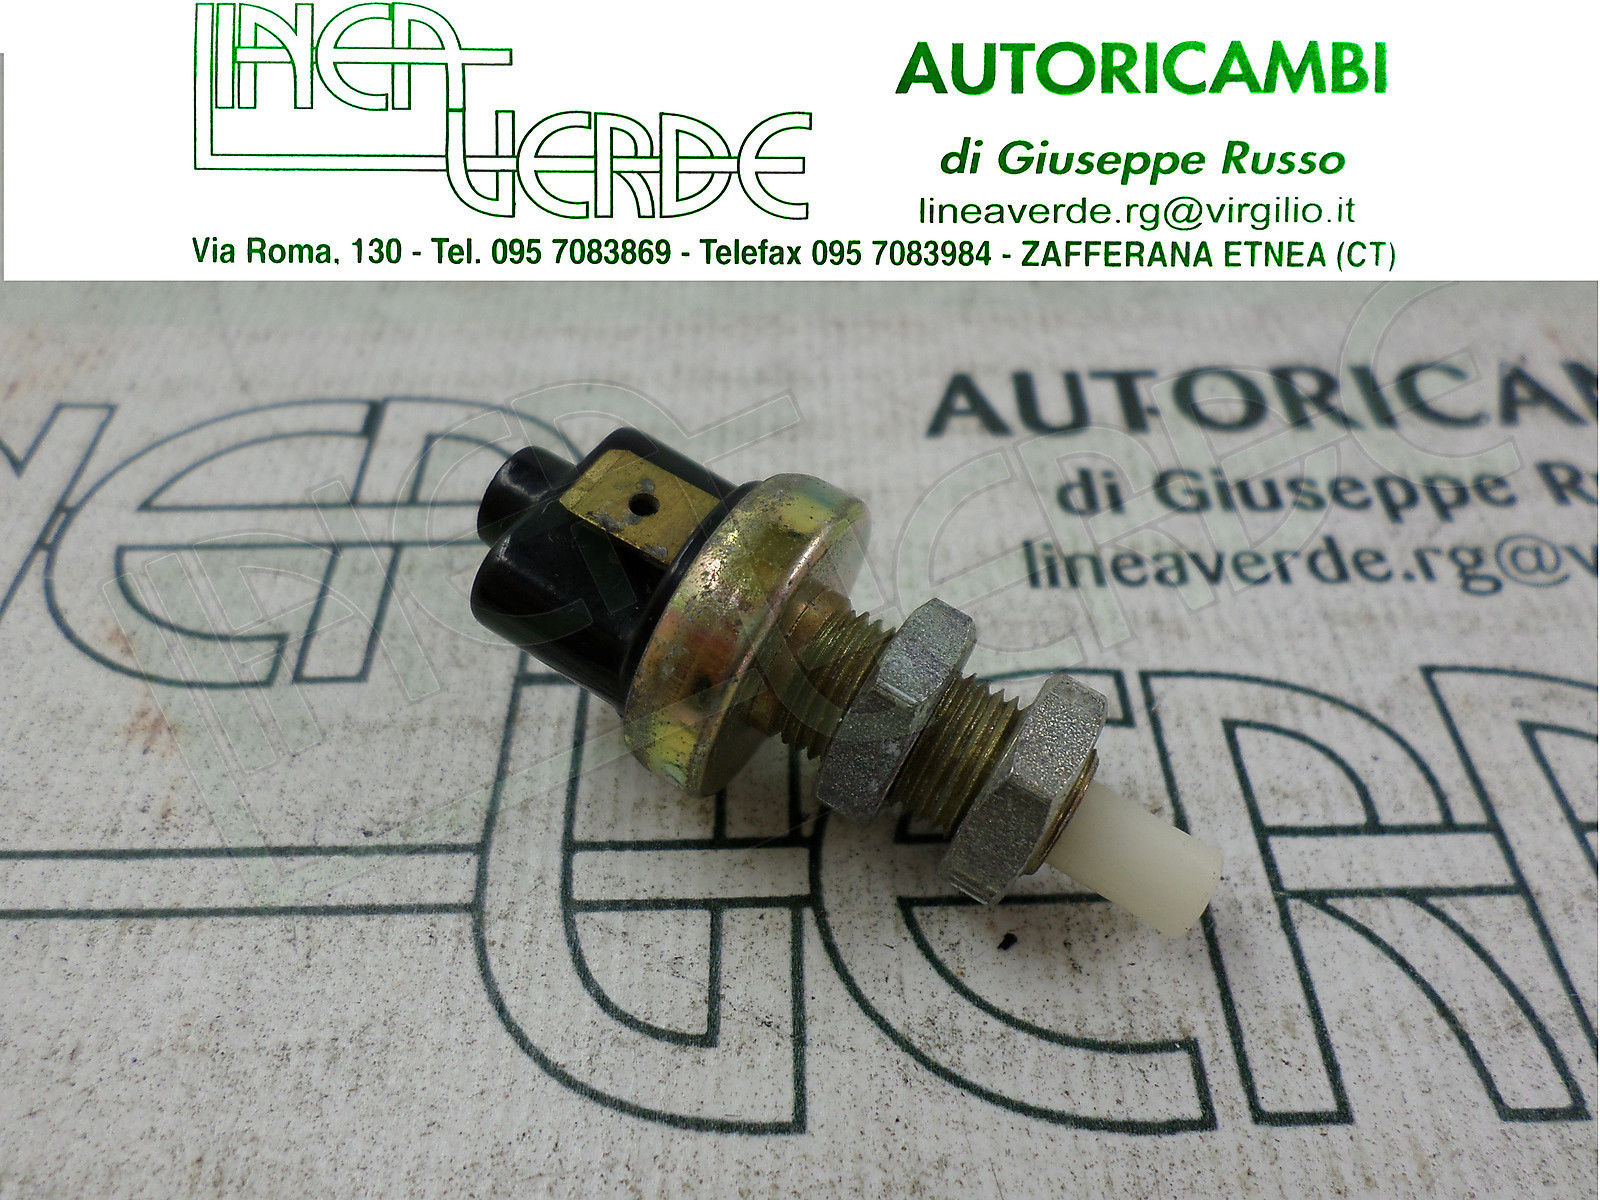 SWITCH STOP LIGHTS BRAKE FOR 53331116 INNOCENTI MINI A THOUSAND 80-83 MINI 3 CIL